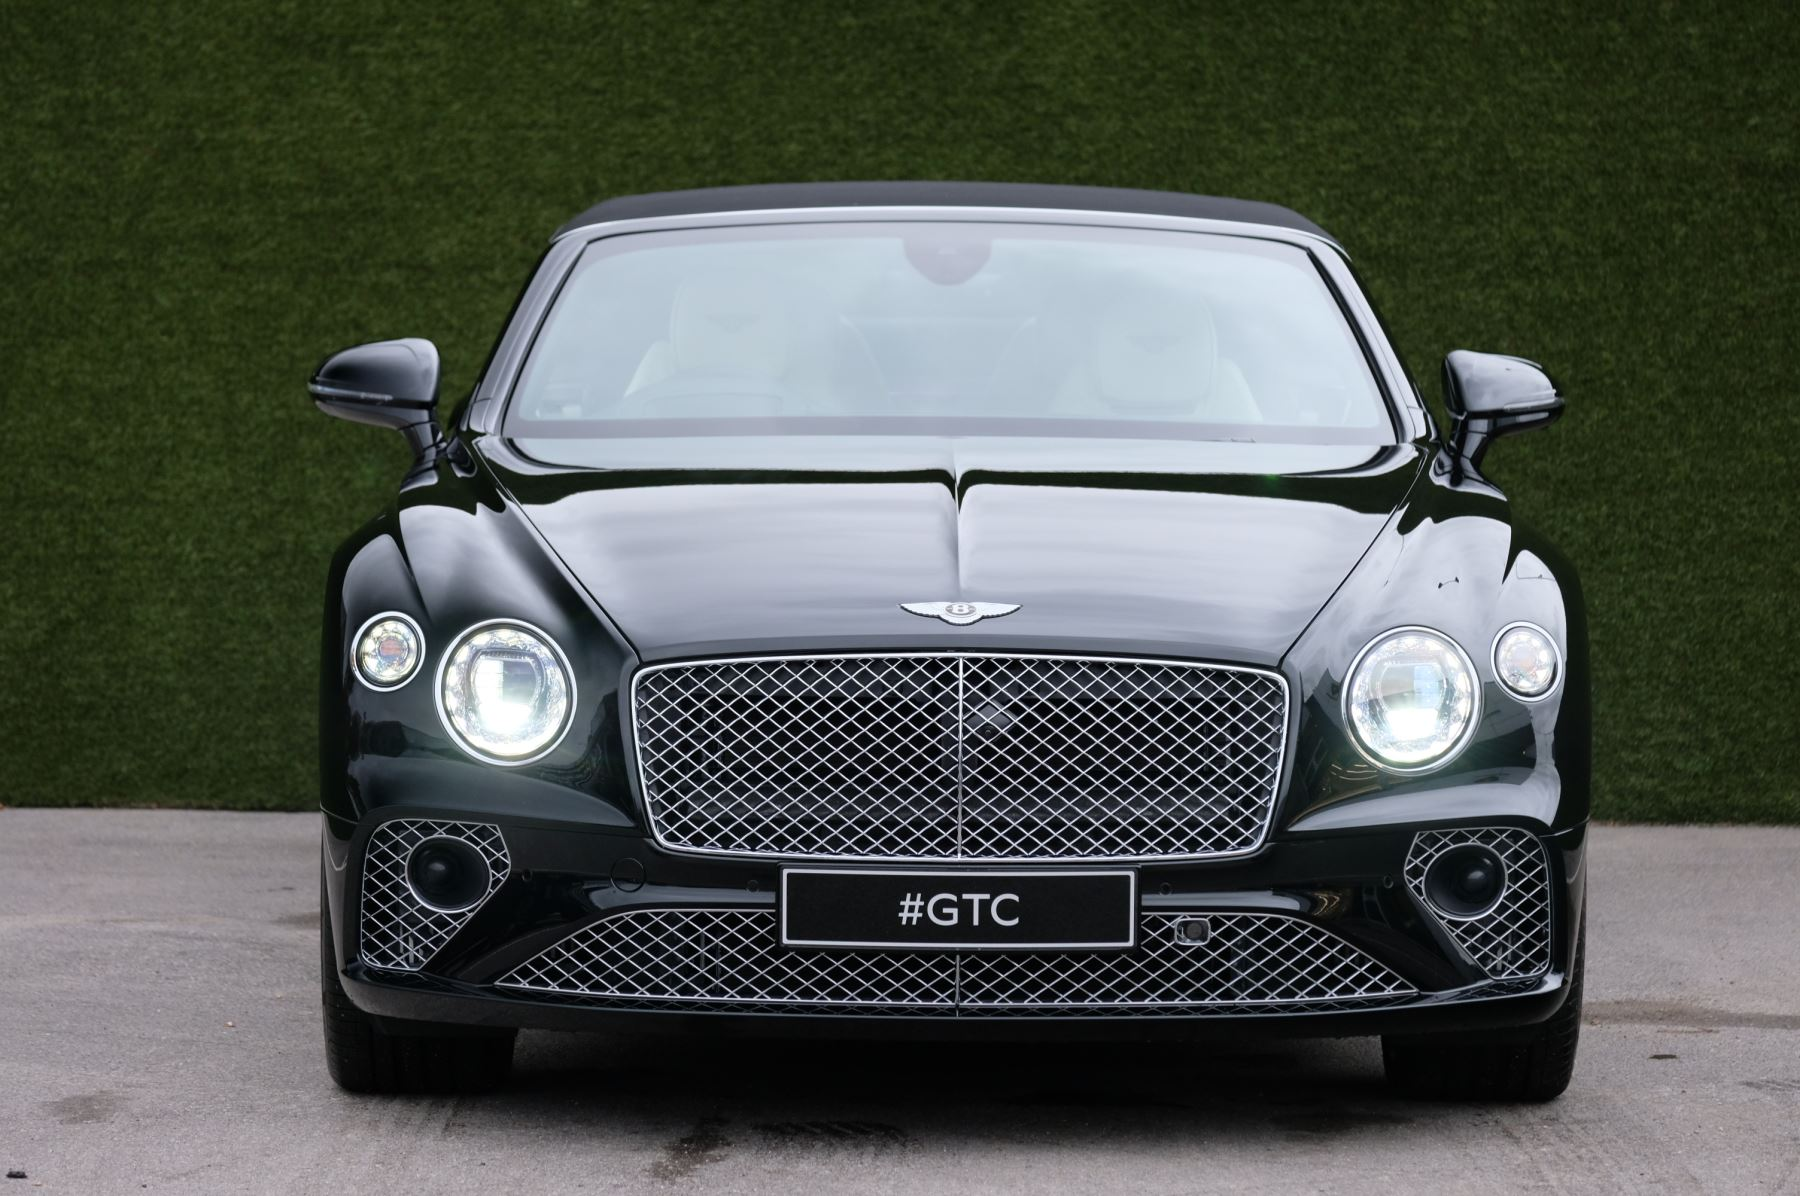 Bentley Continental GTC 0.0 4.0 V8 Mulliner Driving Spec 2dr Auto (Tour Spec)